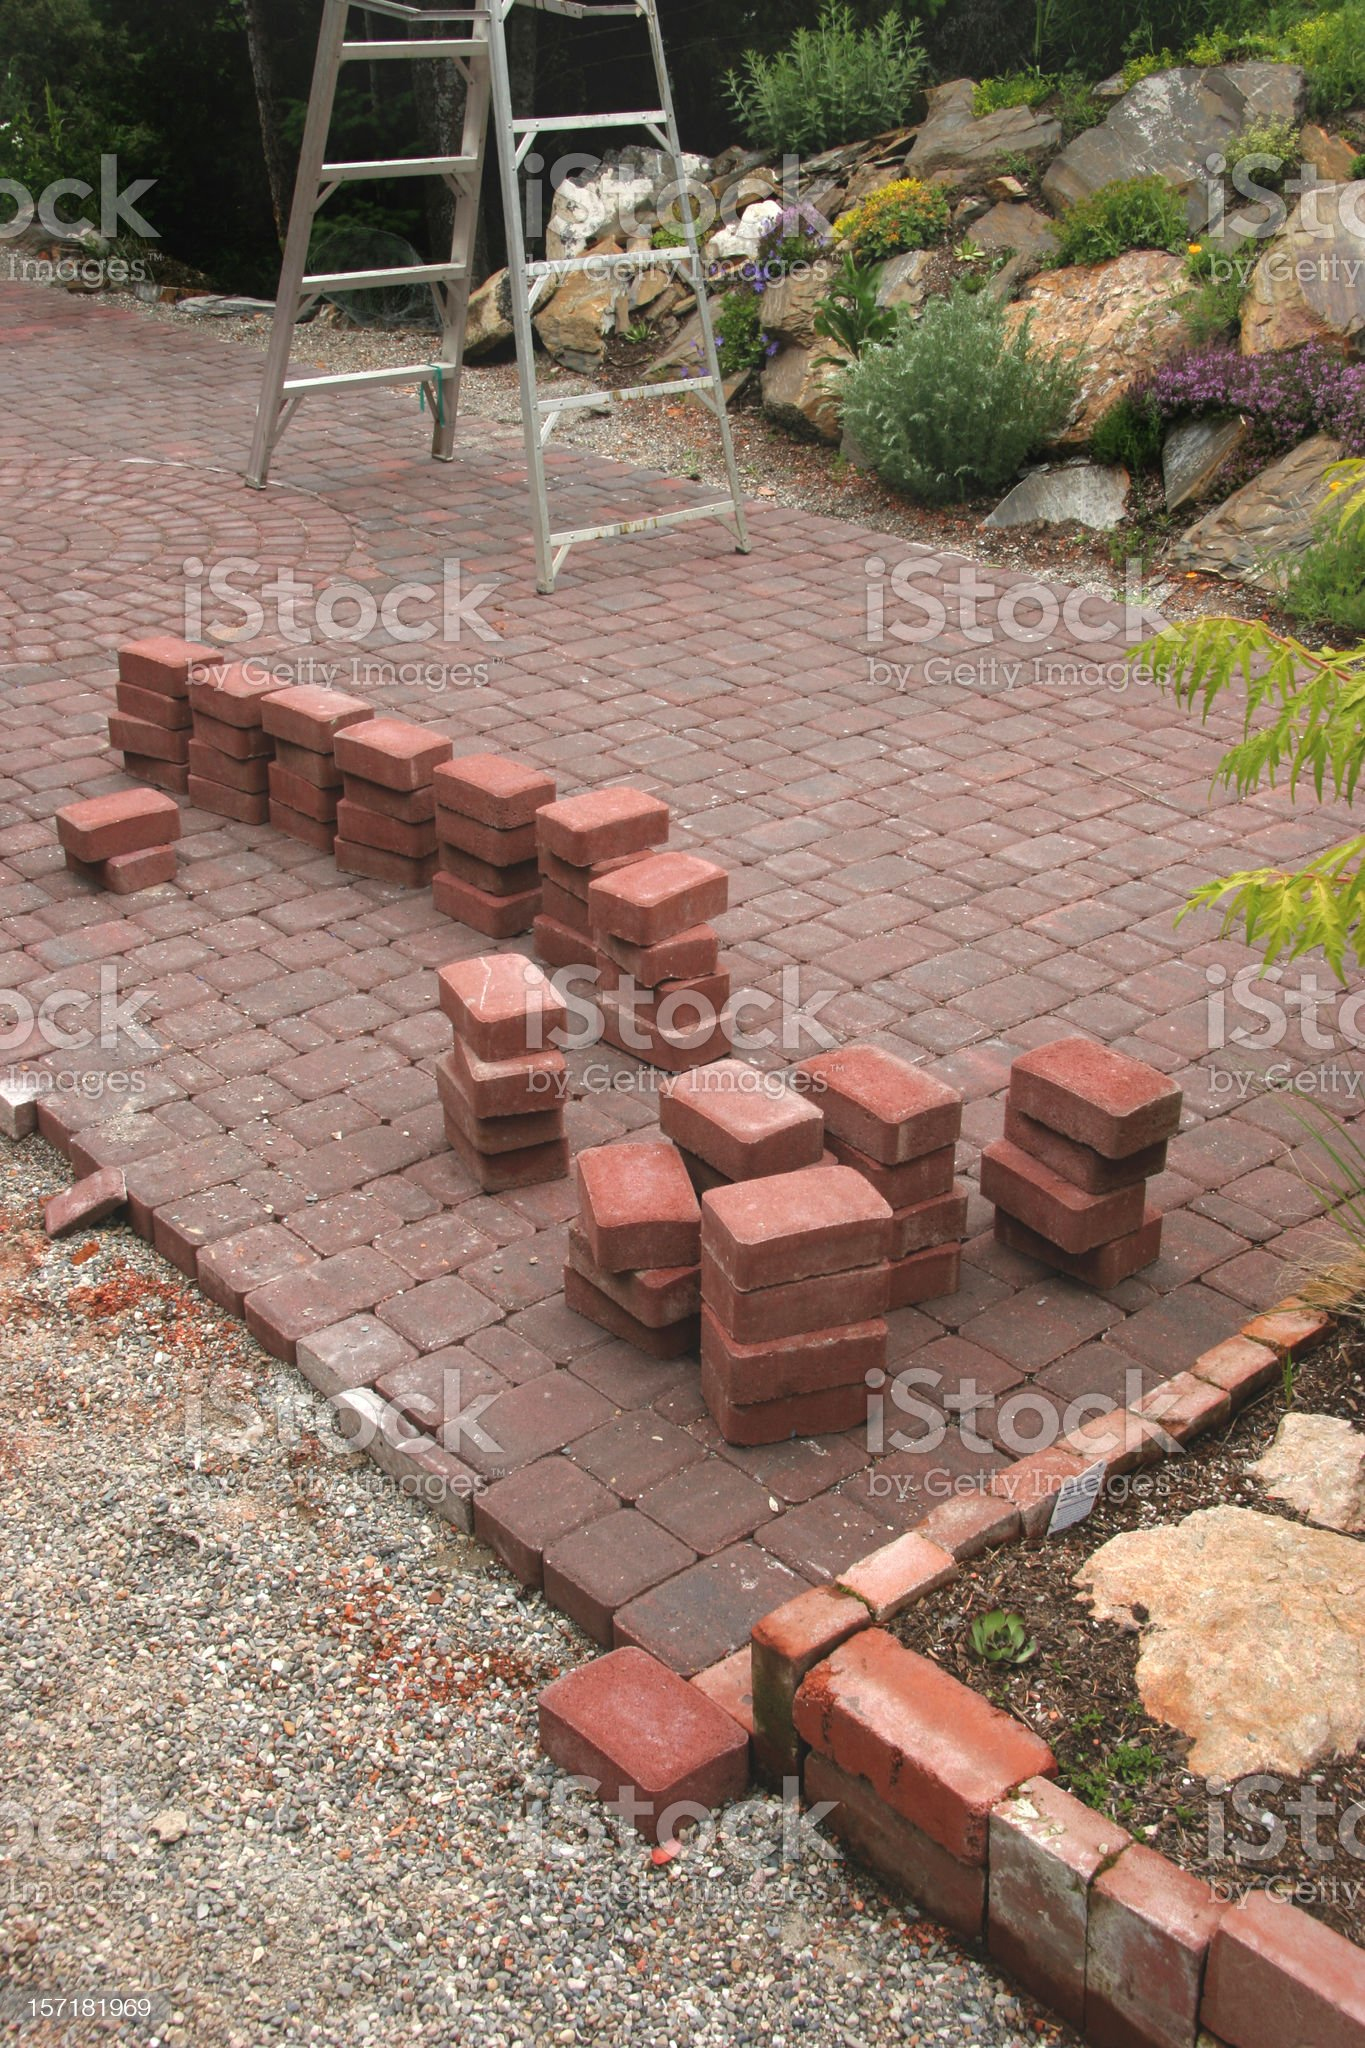 Building The Patio With Bricks royalty-free stock photo